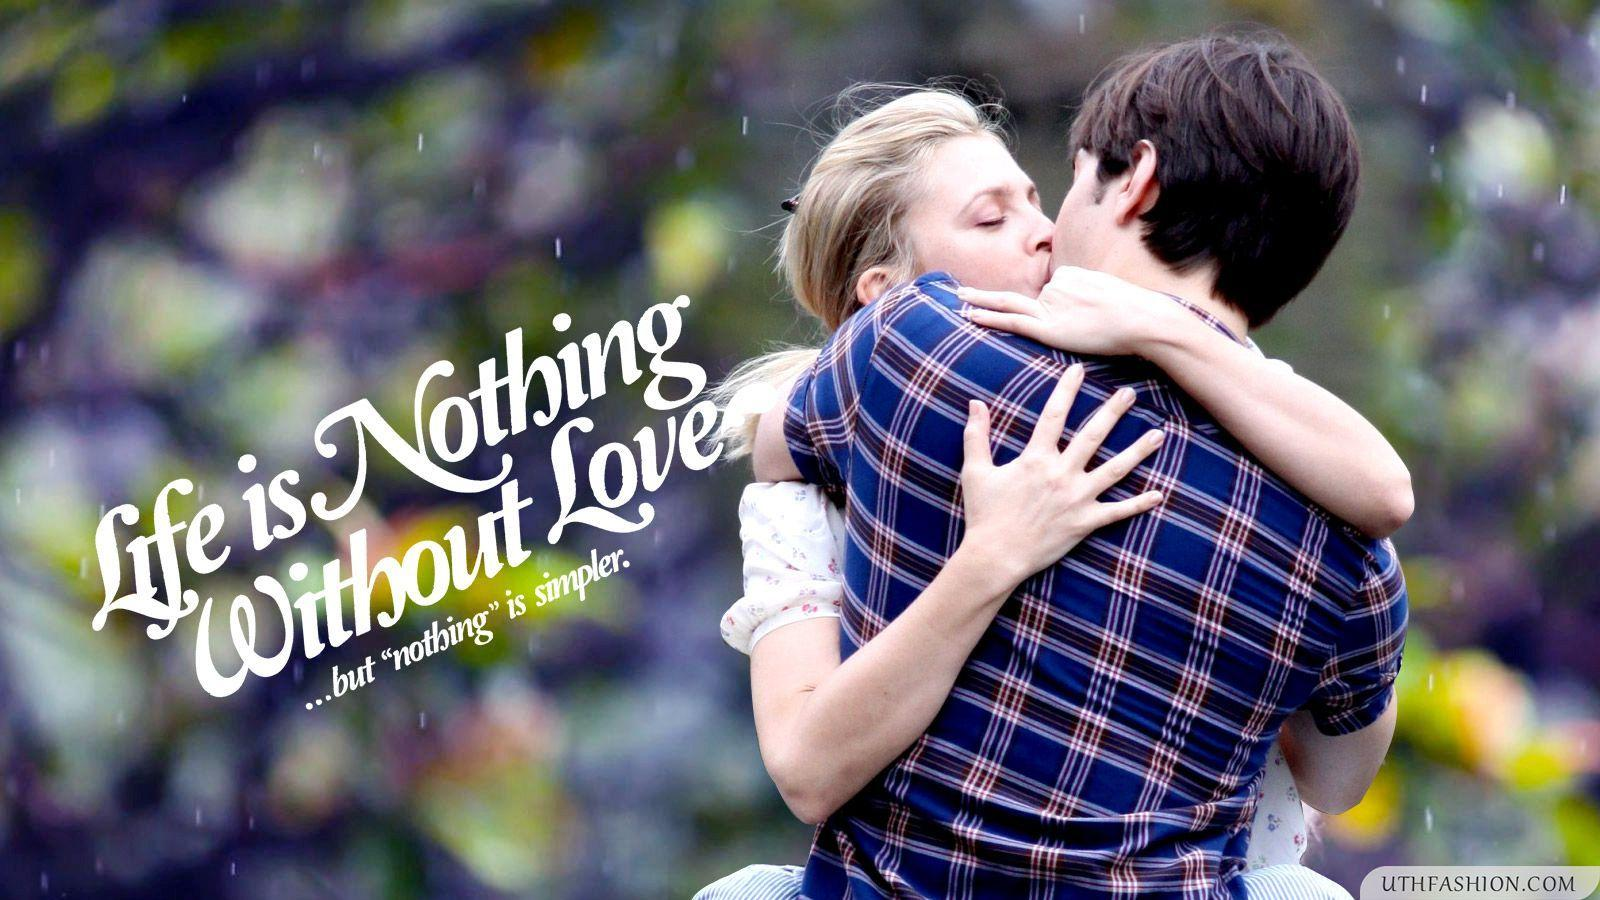 cute lovers kissing wallpapers